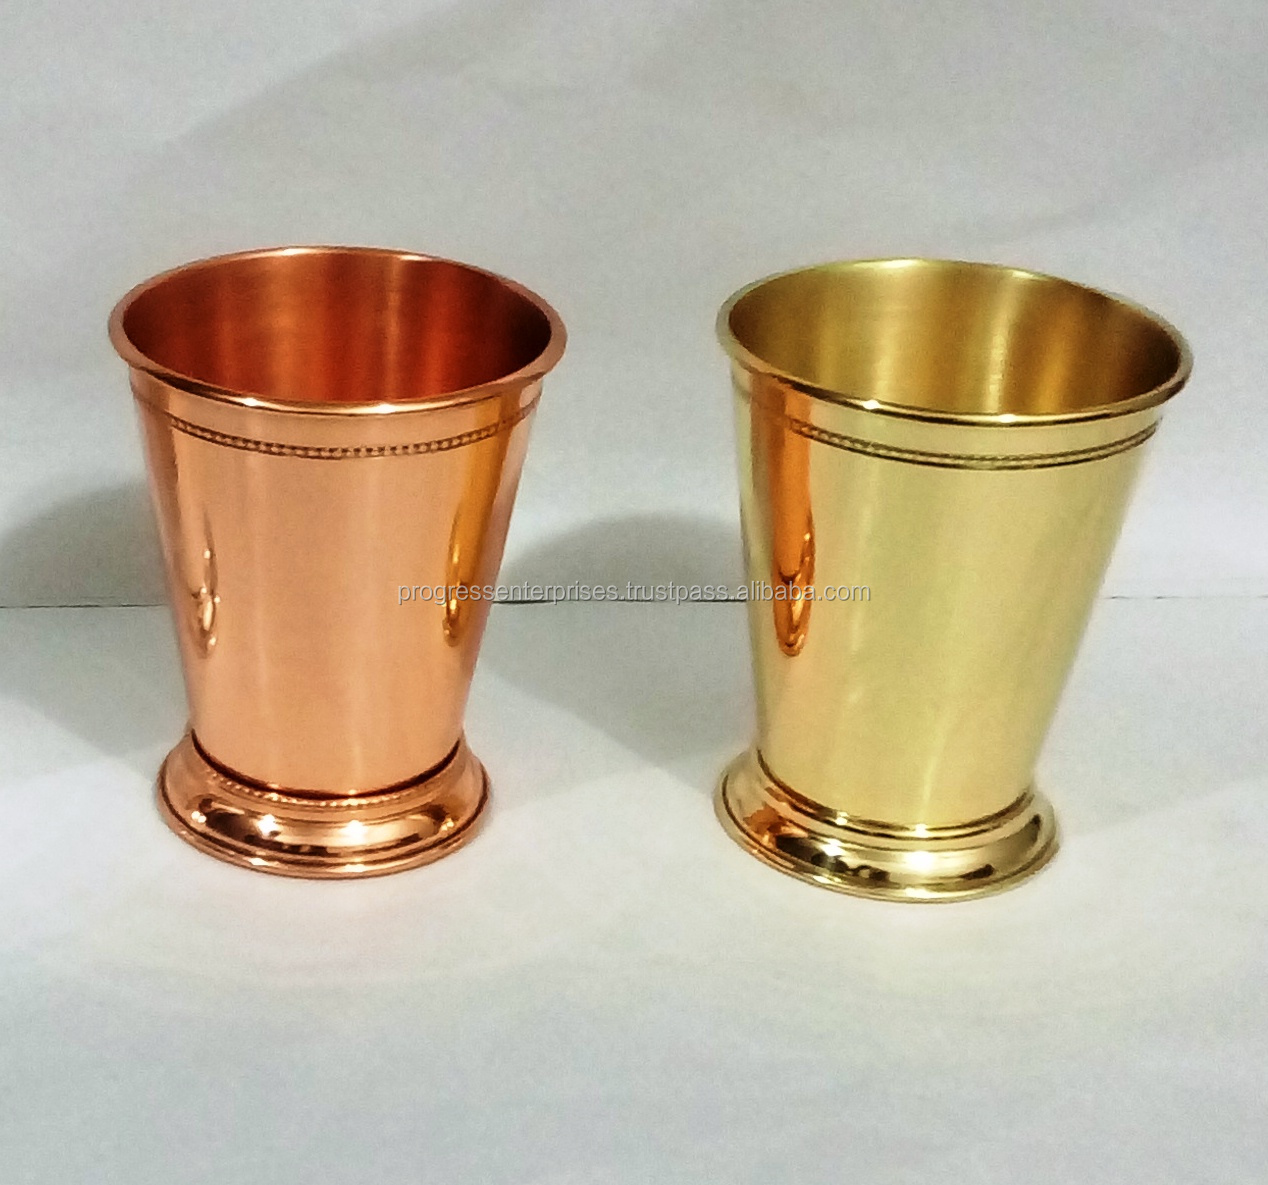 PROMOTIONAL COPPER CUP WHISKY BRANDY RUM